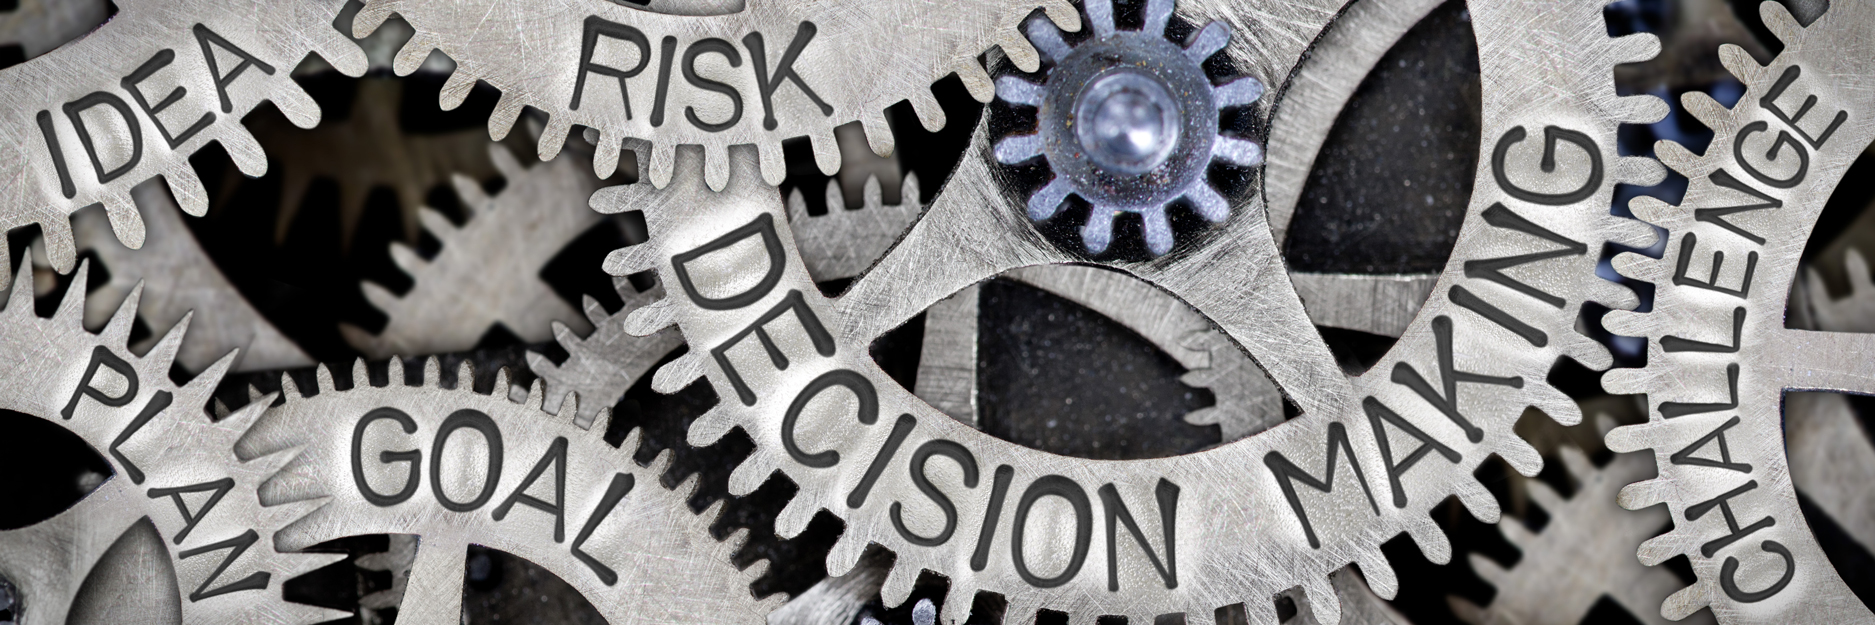 5 Easy Steps to Making Good Decisions